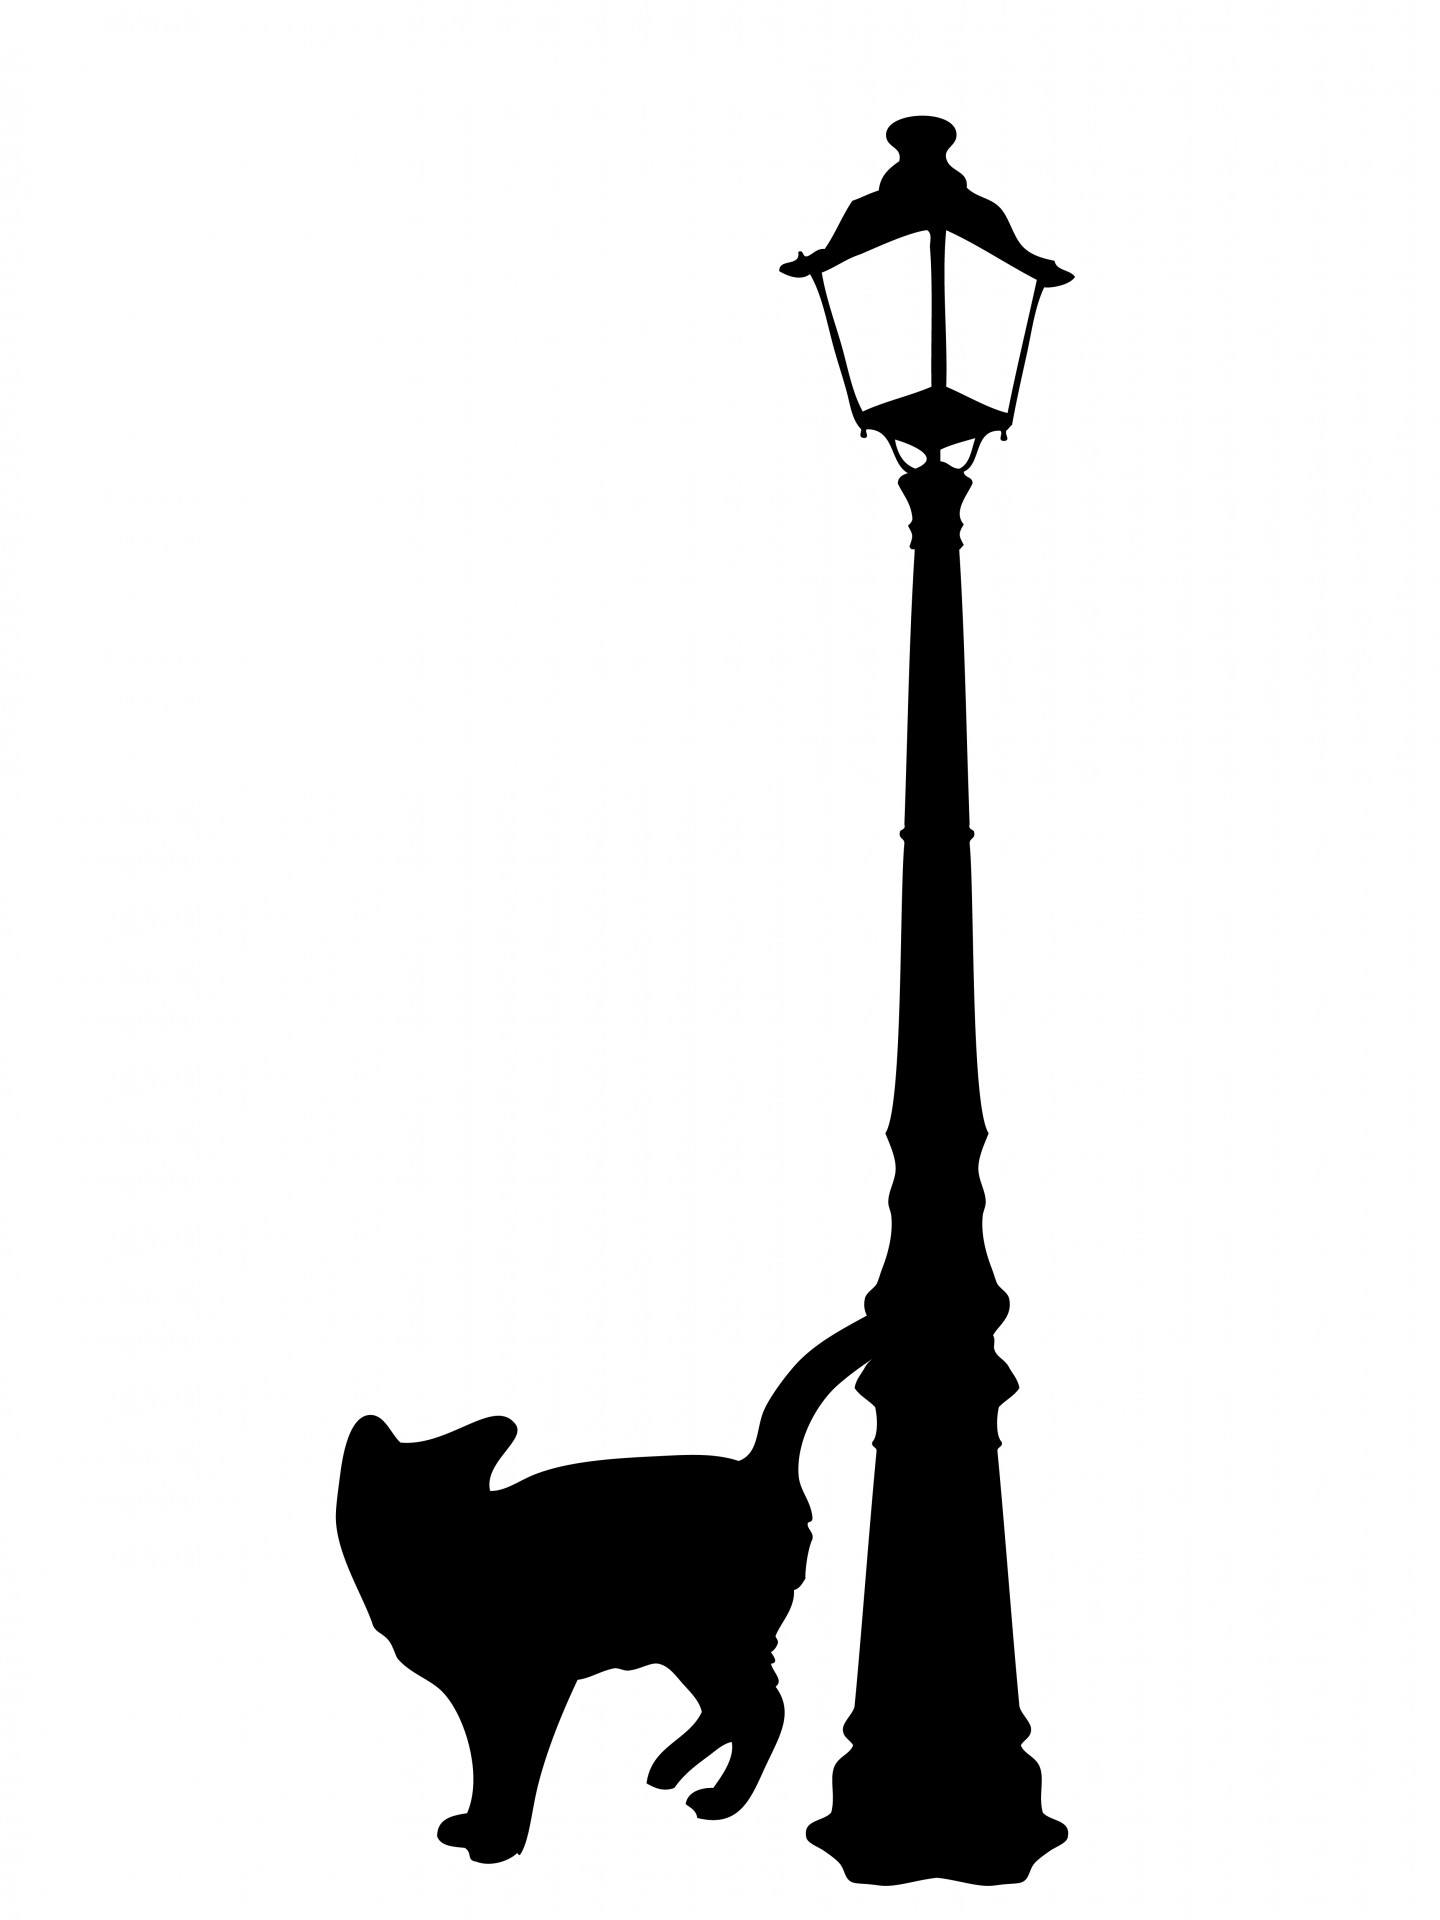 1440x1920 Black Cat Silhouette Clipart Free Stock Photo